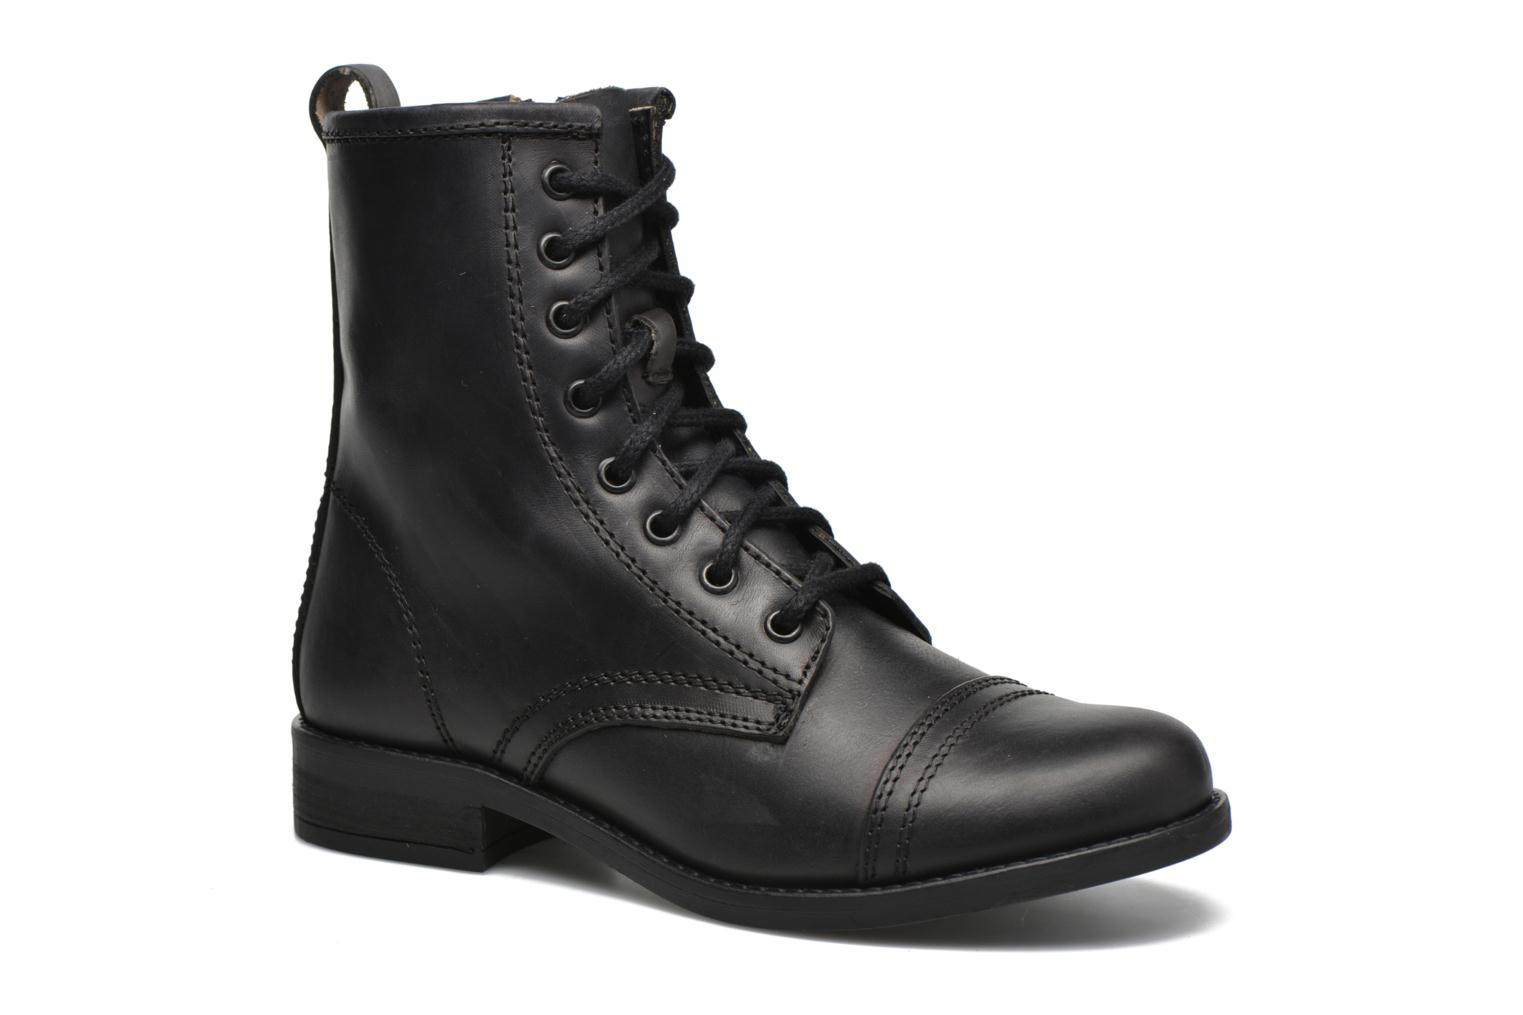 Charrie 01001 Black Leather